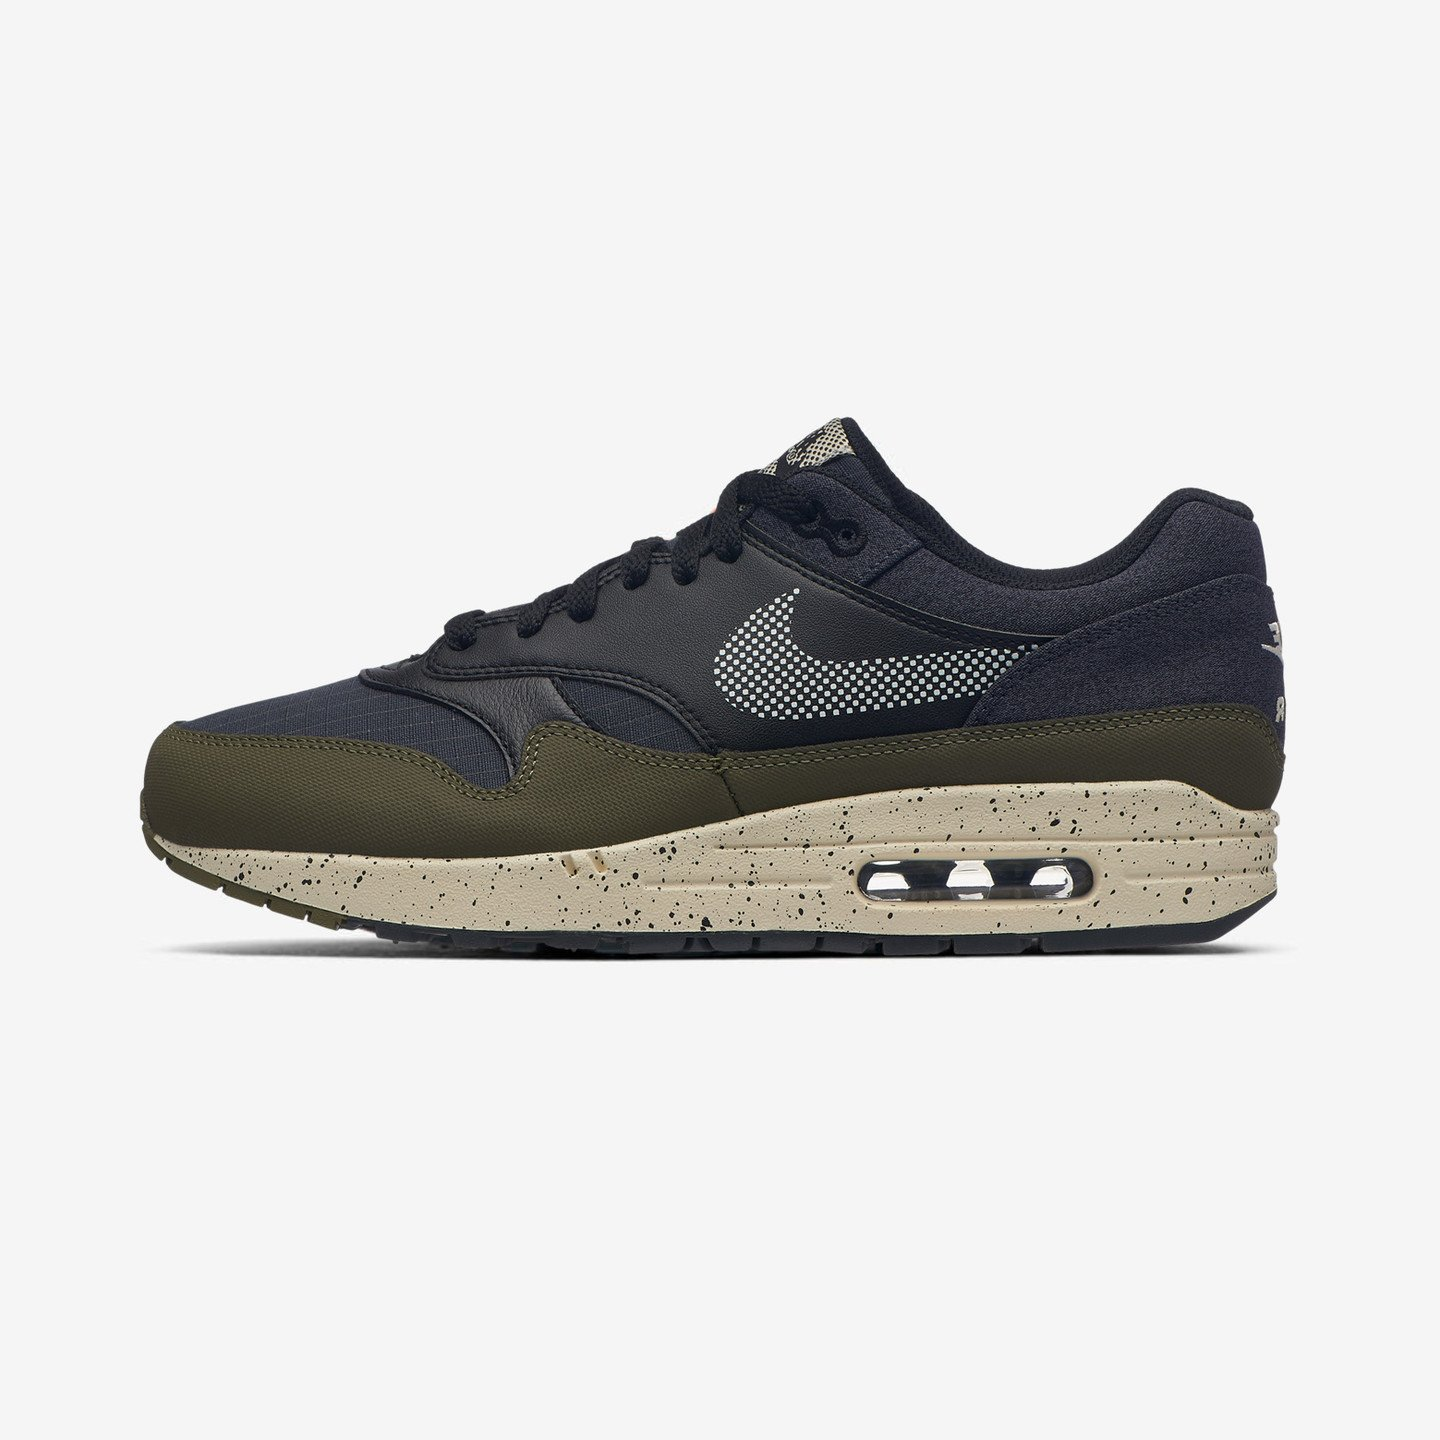 Nike Air Max 1 SE 'Reflective Ripstop' Medium Olive / Light Cream / Black AO1021-200